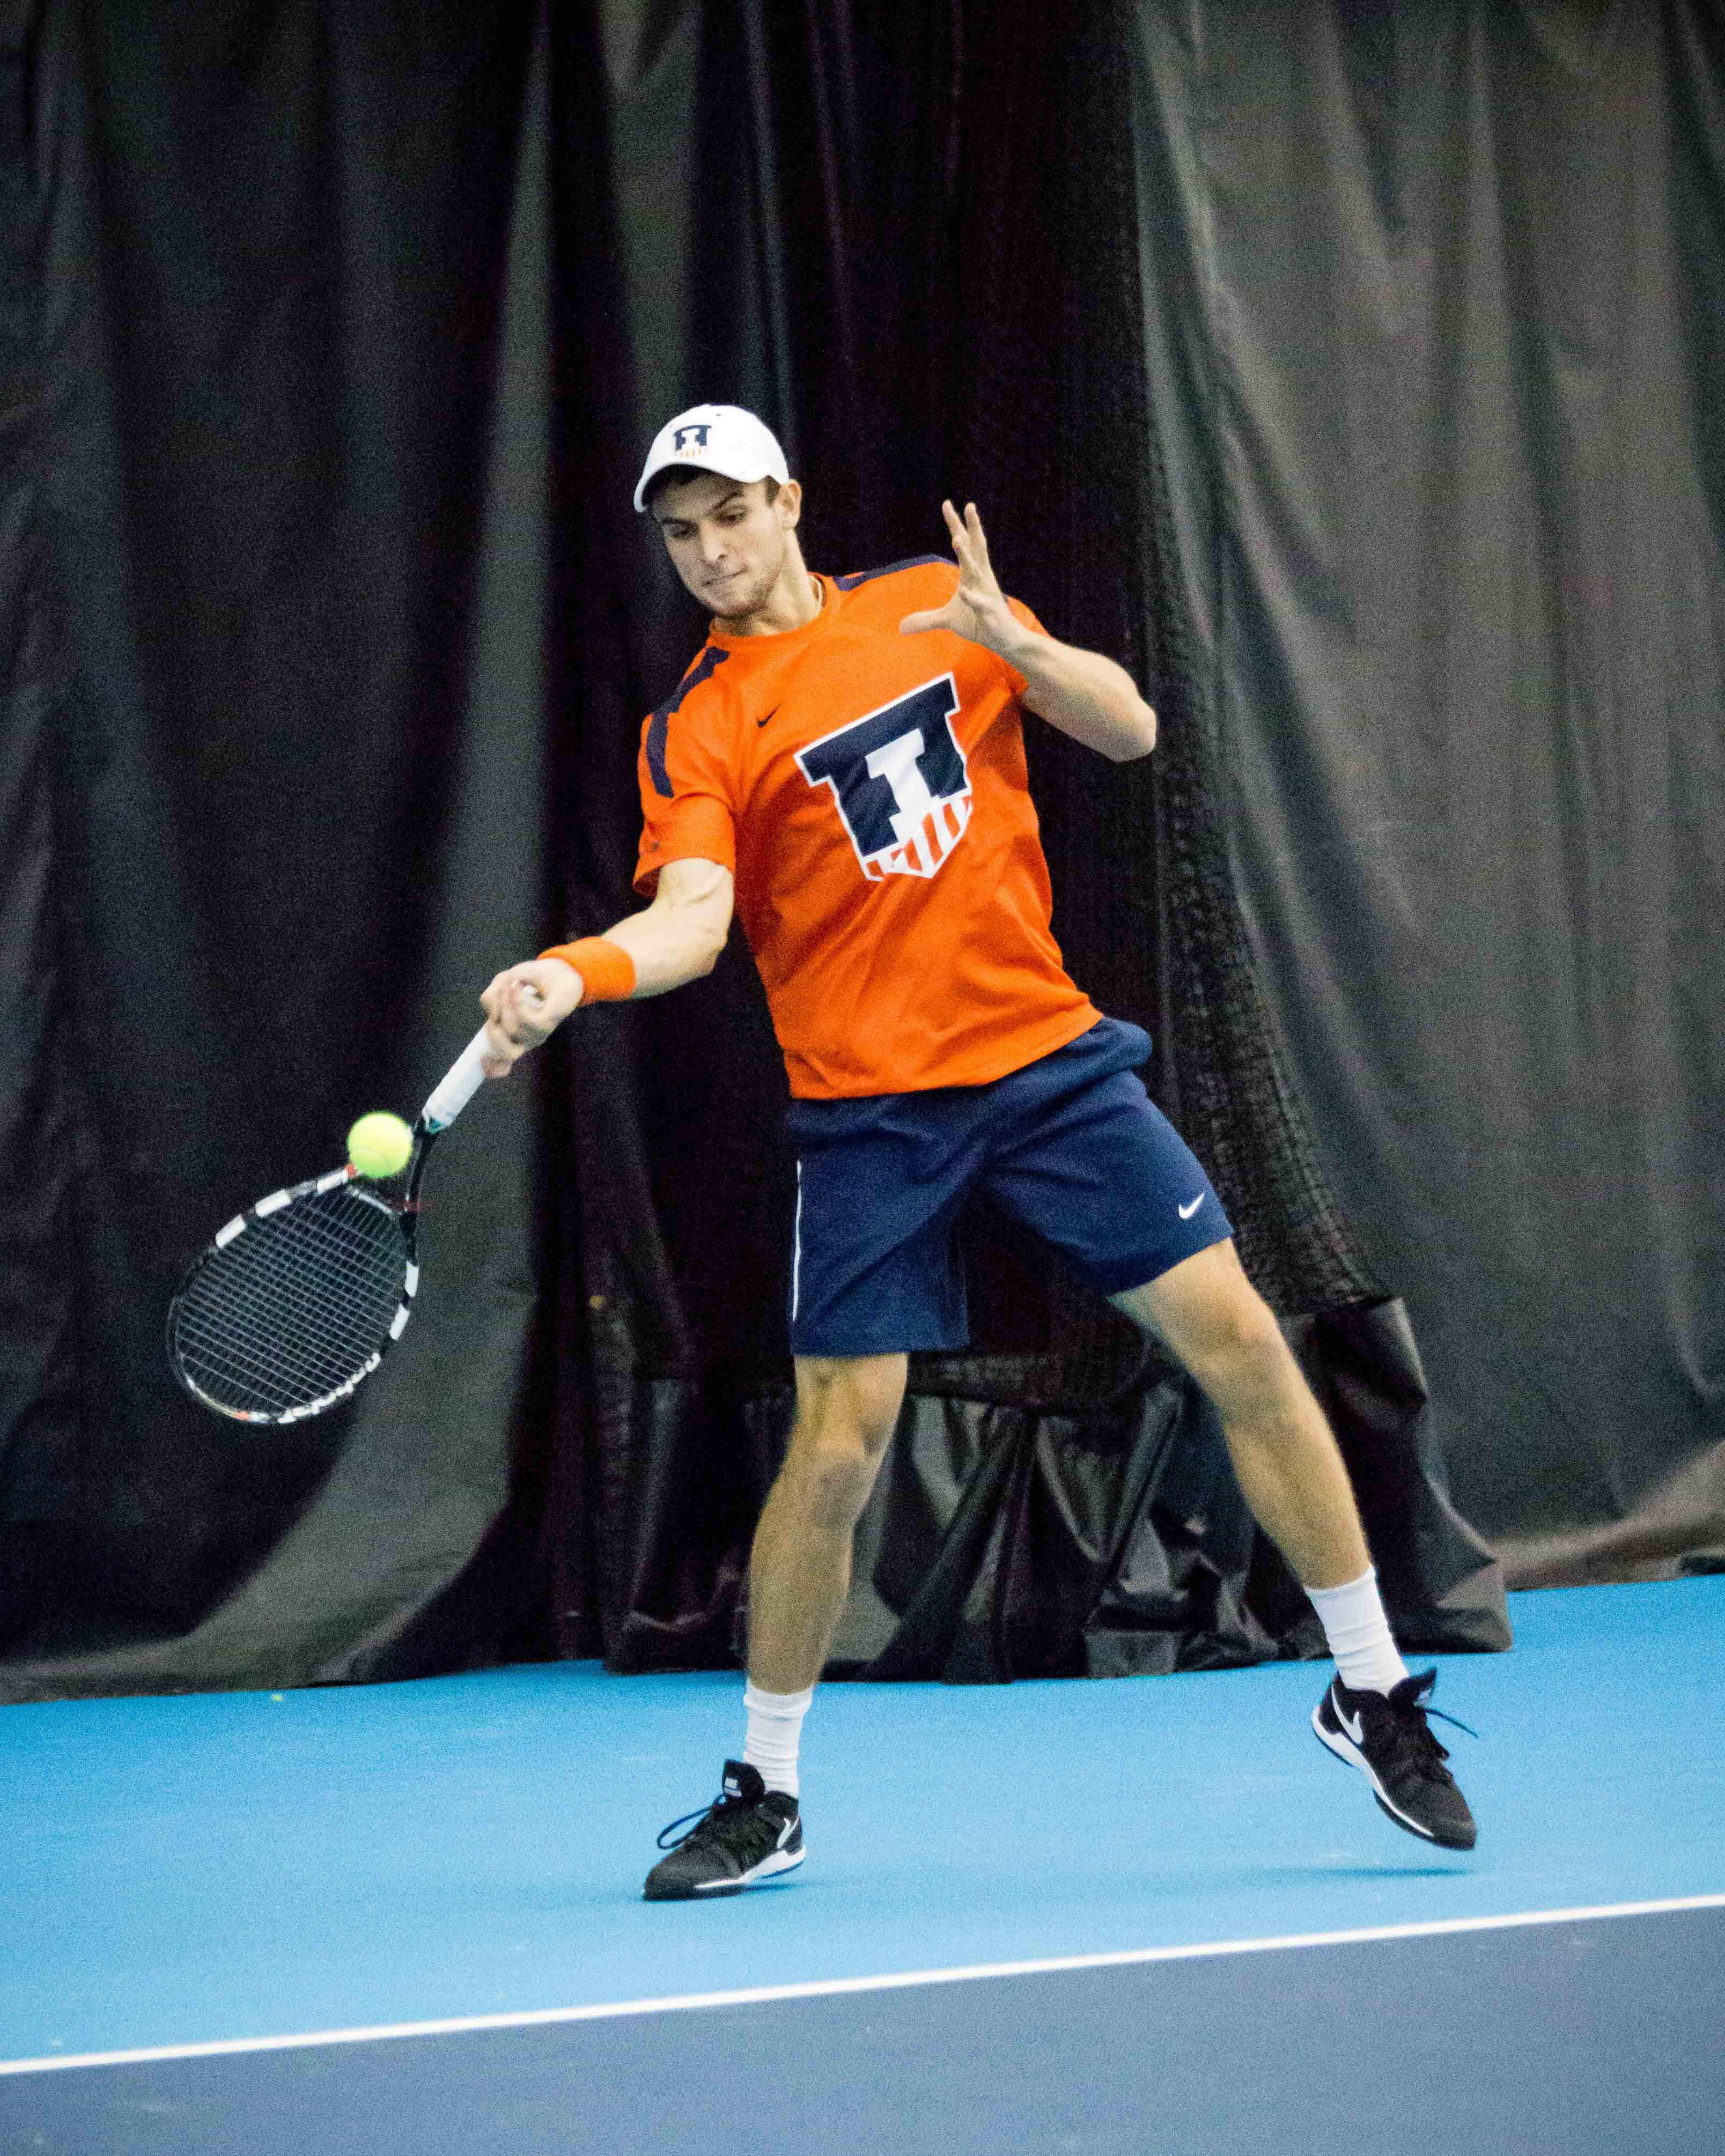 Illinois' Aleks Vukic returns the ball during the match against Indiana at Atkins Tennis Center on Friday, February 10.